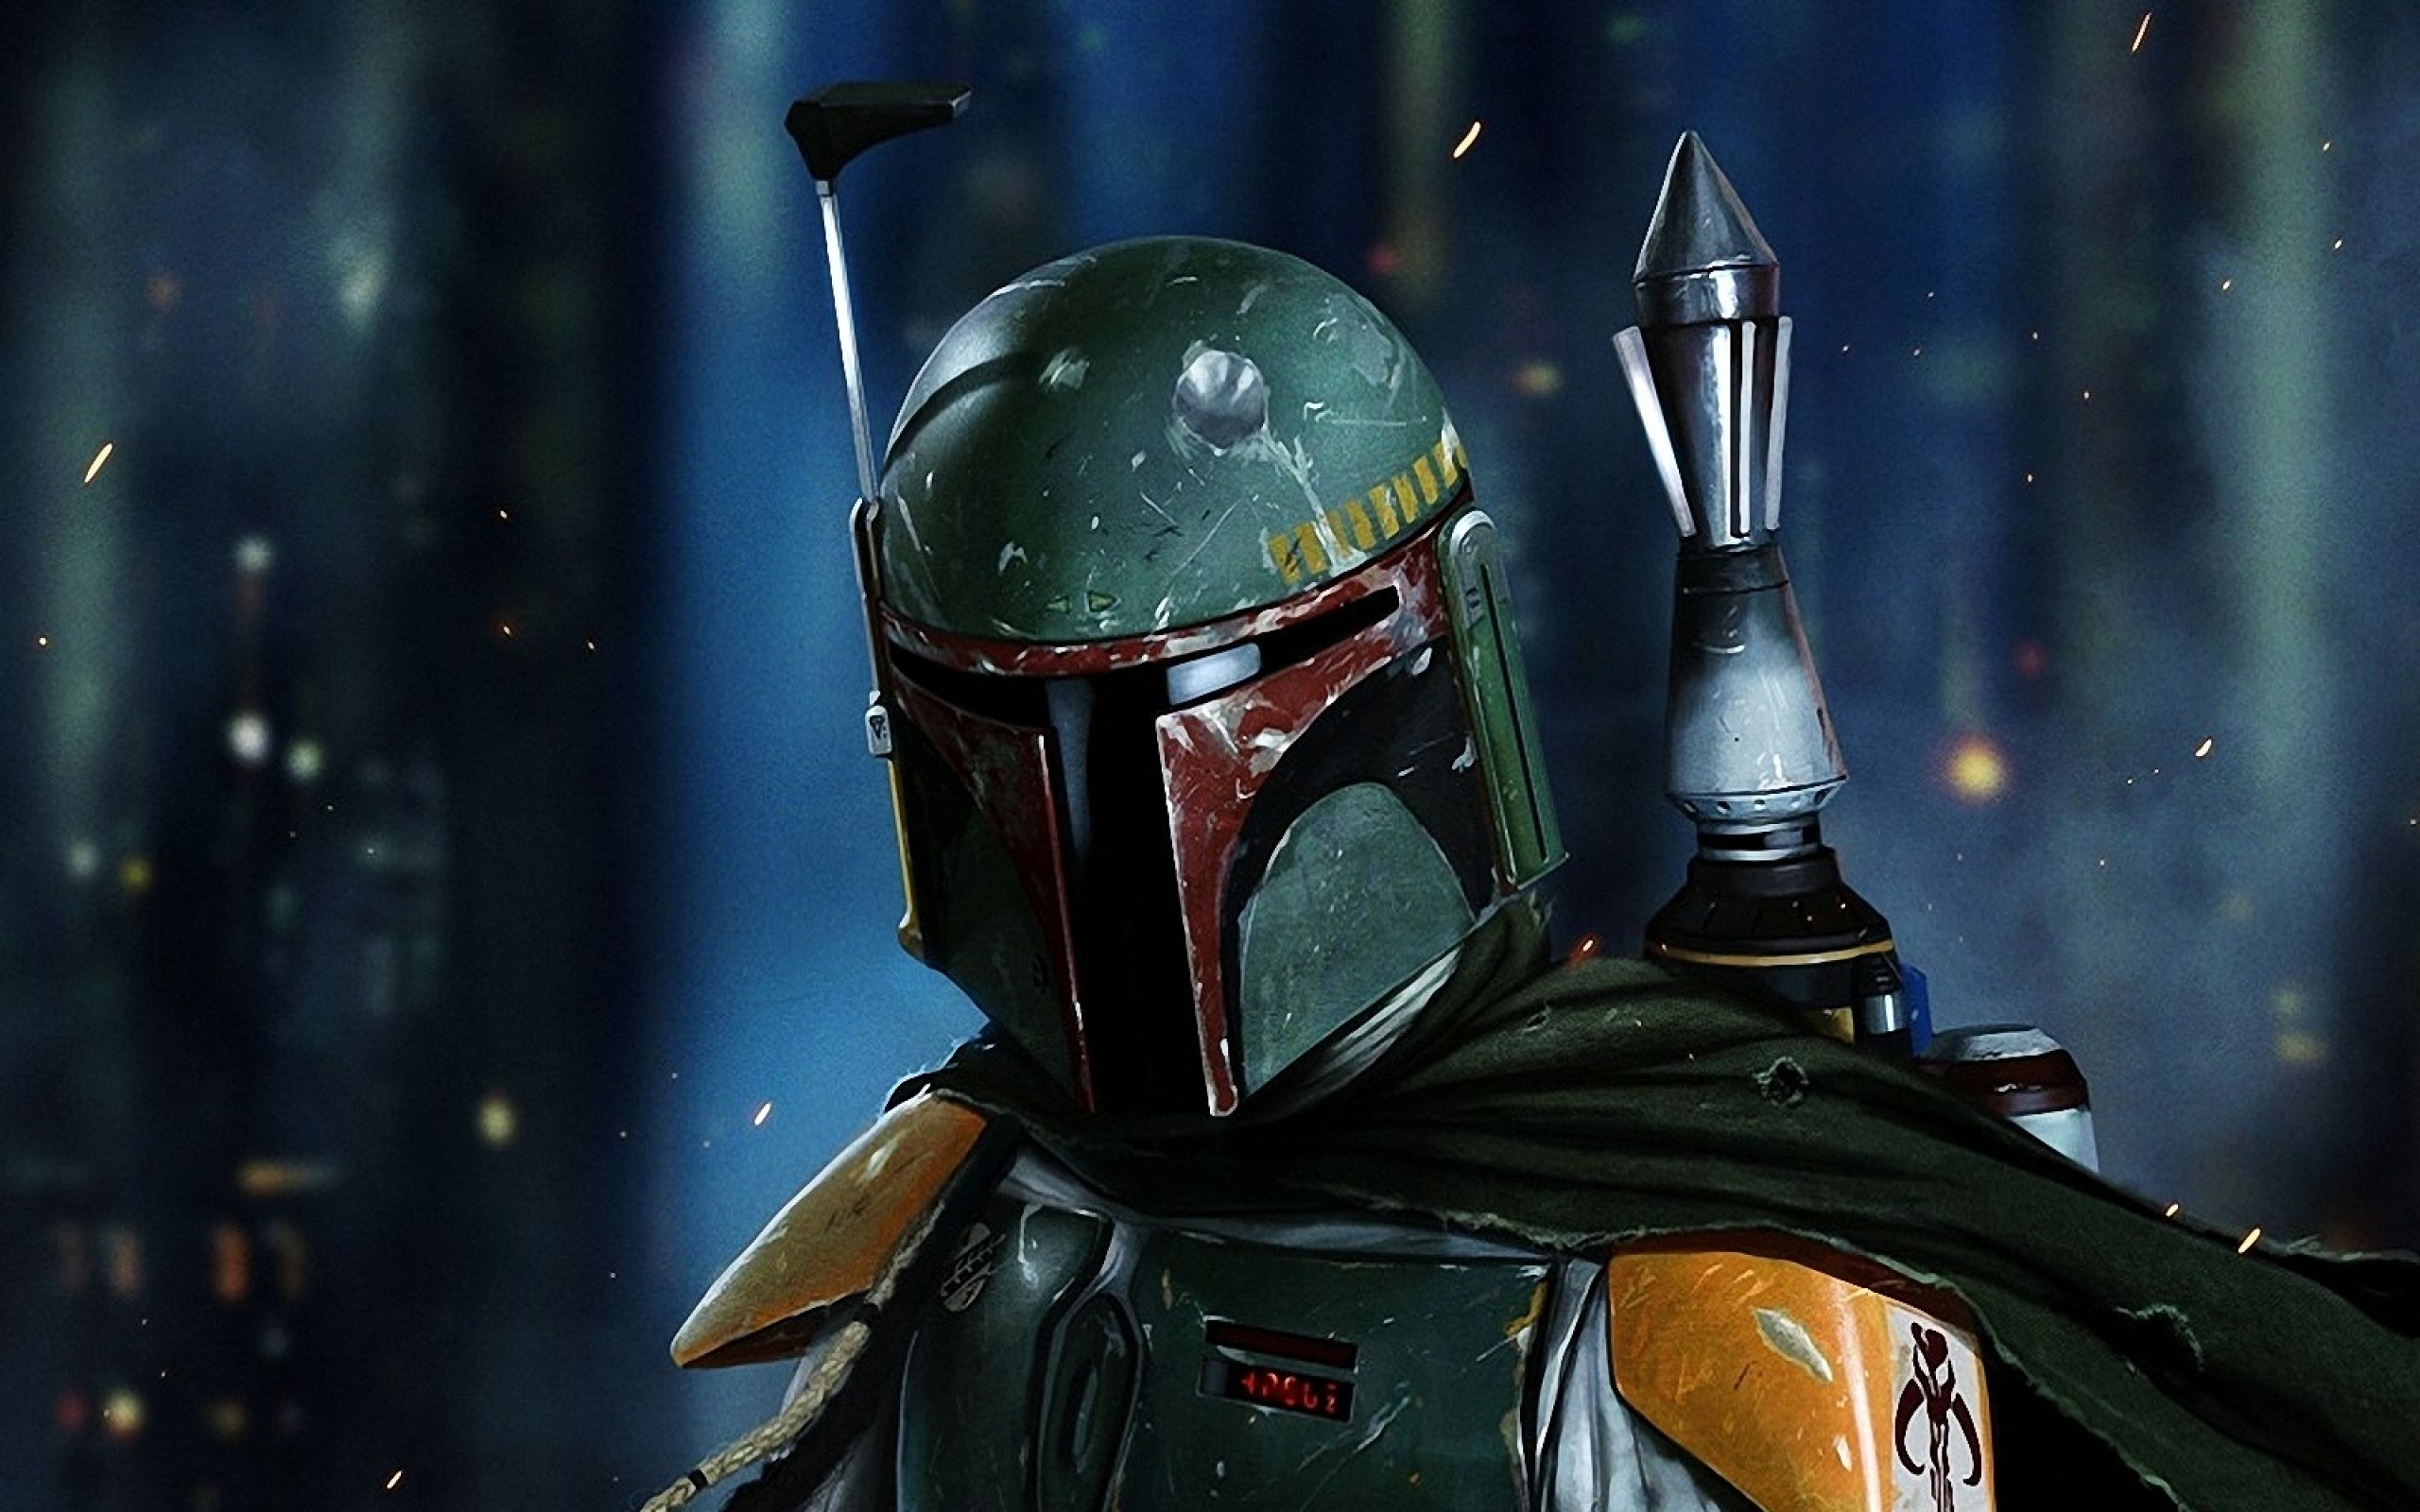 star wars boba fett fantasy art artwork 1600x1200 wallpaper wallpaper 2560x1600